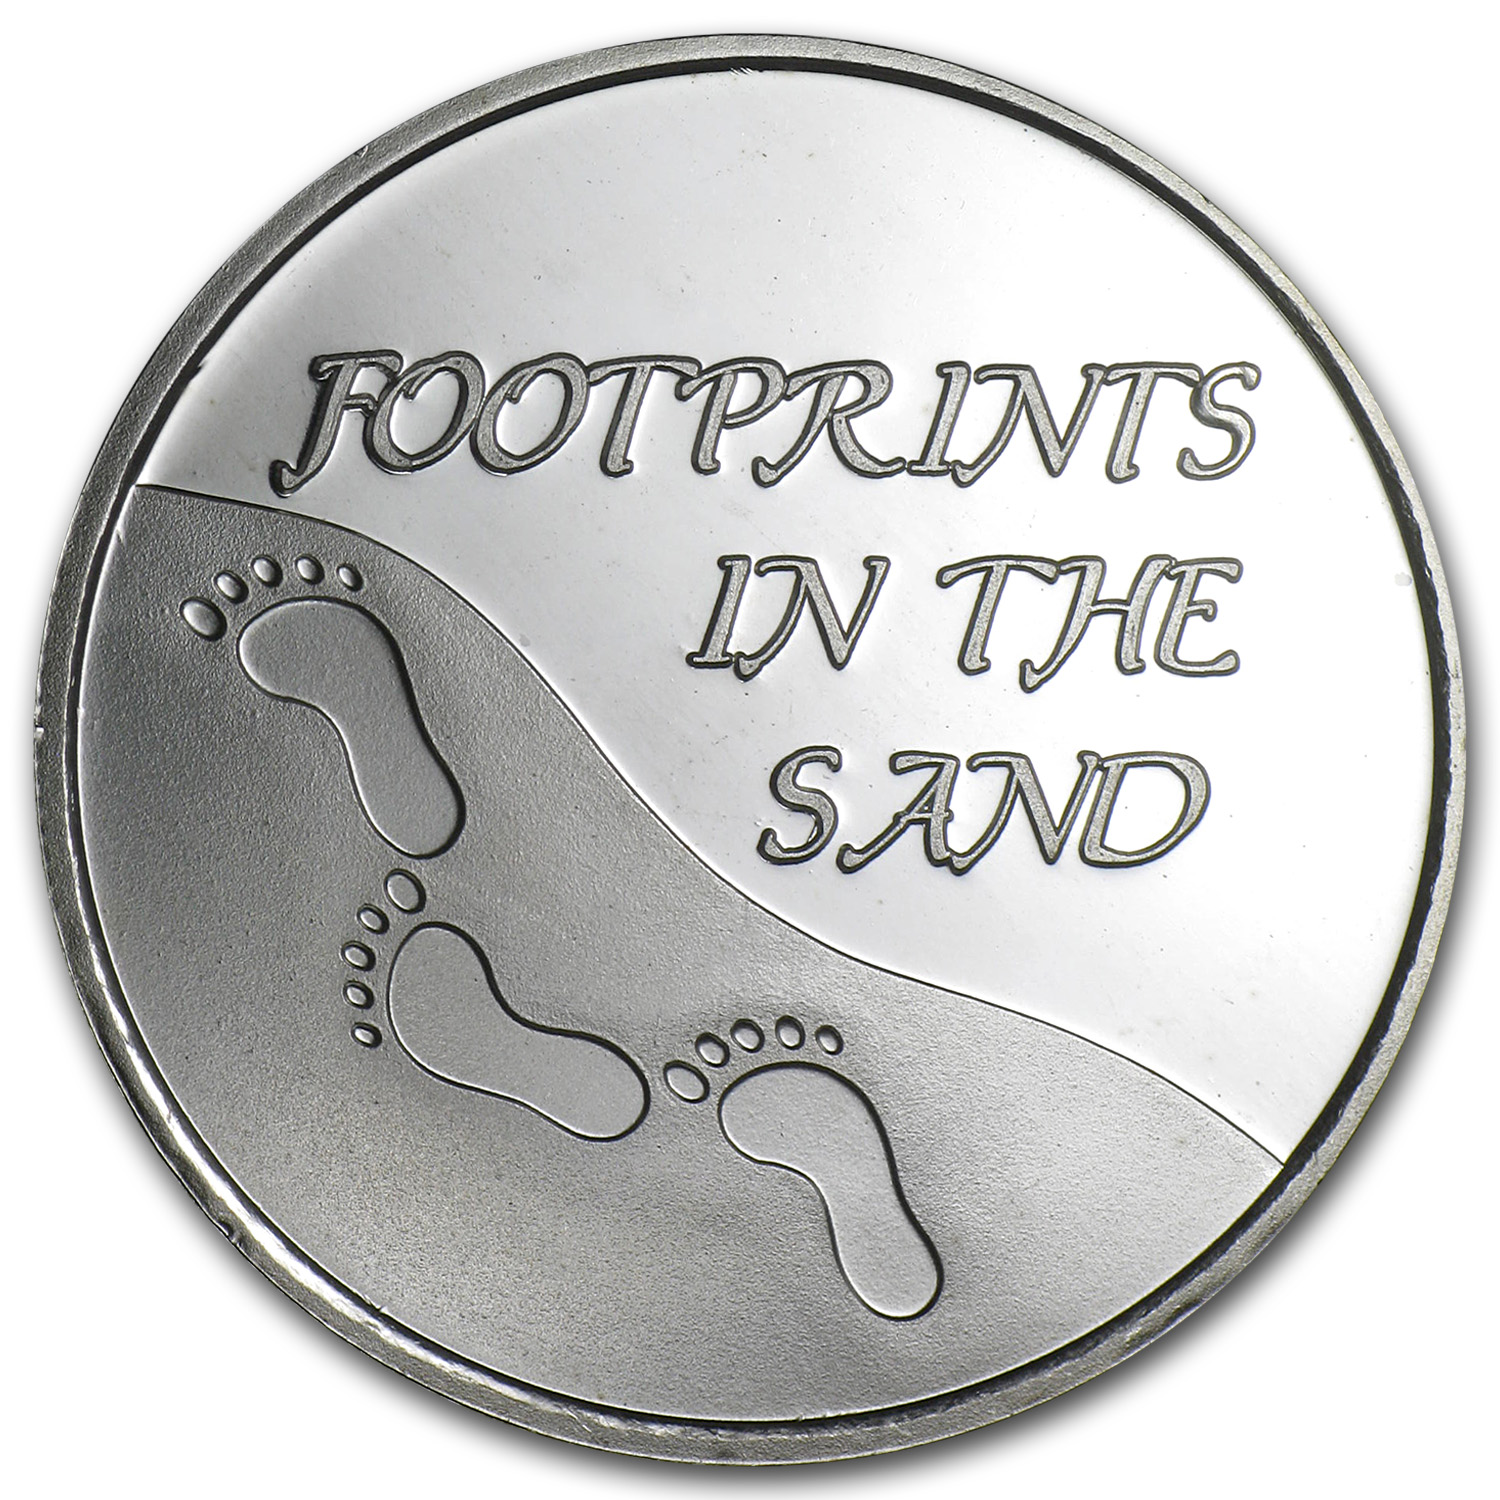 1 oz Silver Rounds - Footprints in the Sand - (Plain/w/Box & Cap)